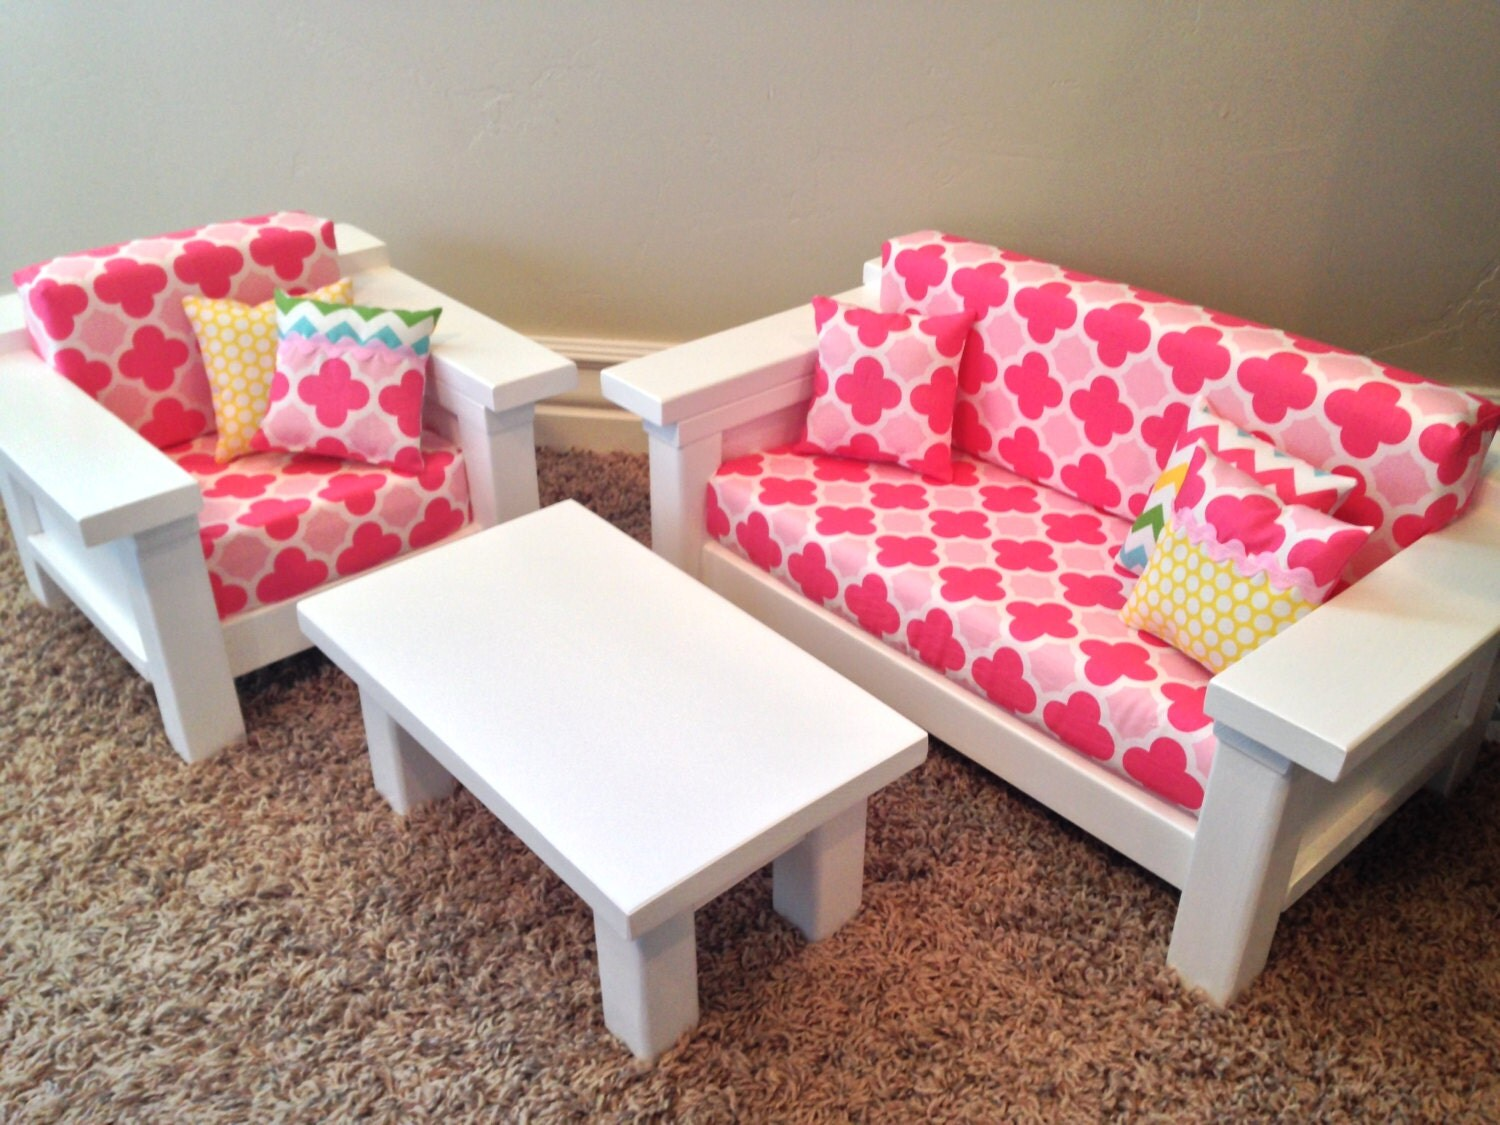 American Girl Doll Furniture. 3 Pc Living Room Set: Couch